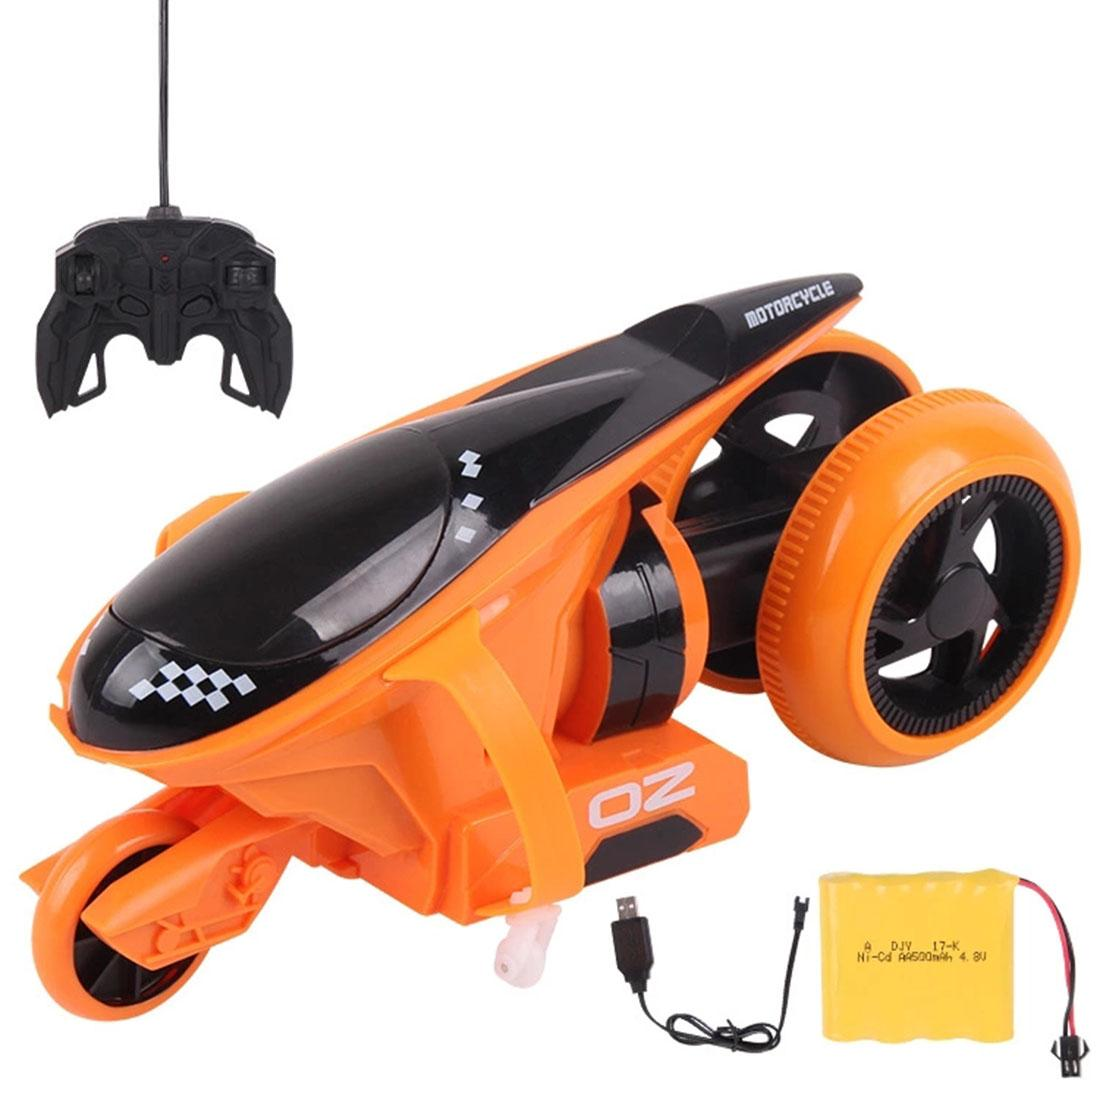 90 Degree 2.4G Rear Wheel Rotation Cool Light Vehicle High-Speed Drift RC Motorcycle for Children Remote Control Toys- Orange